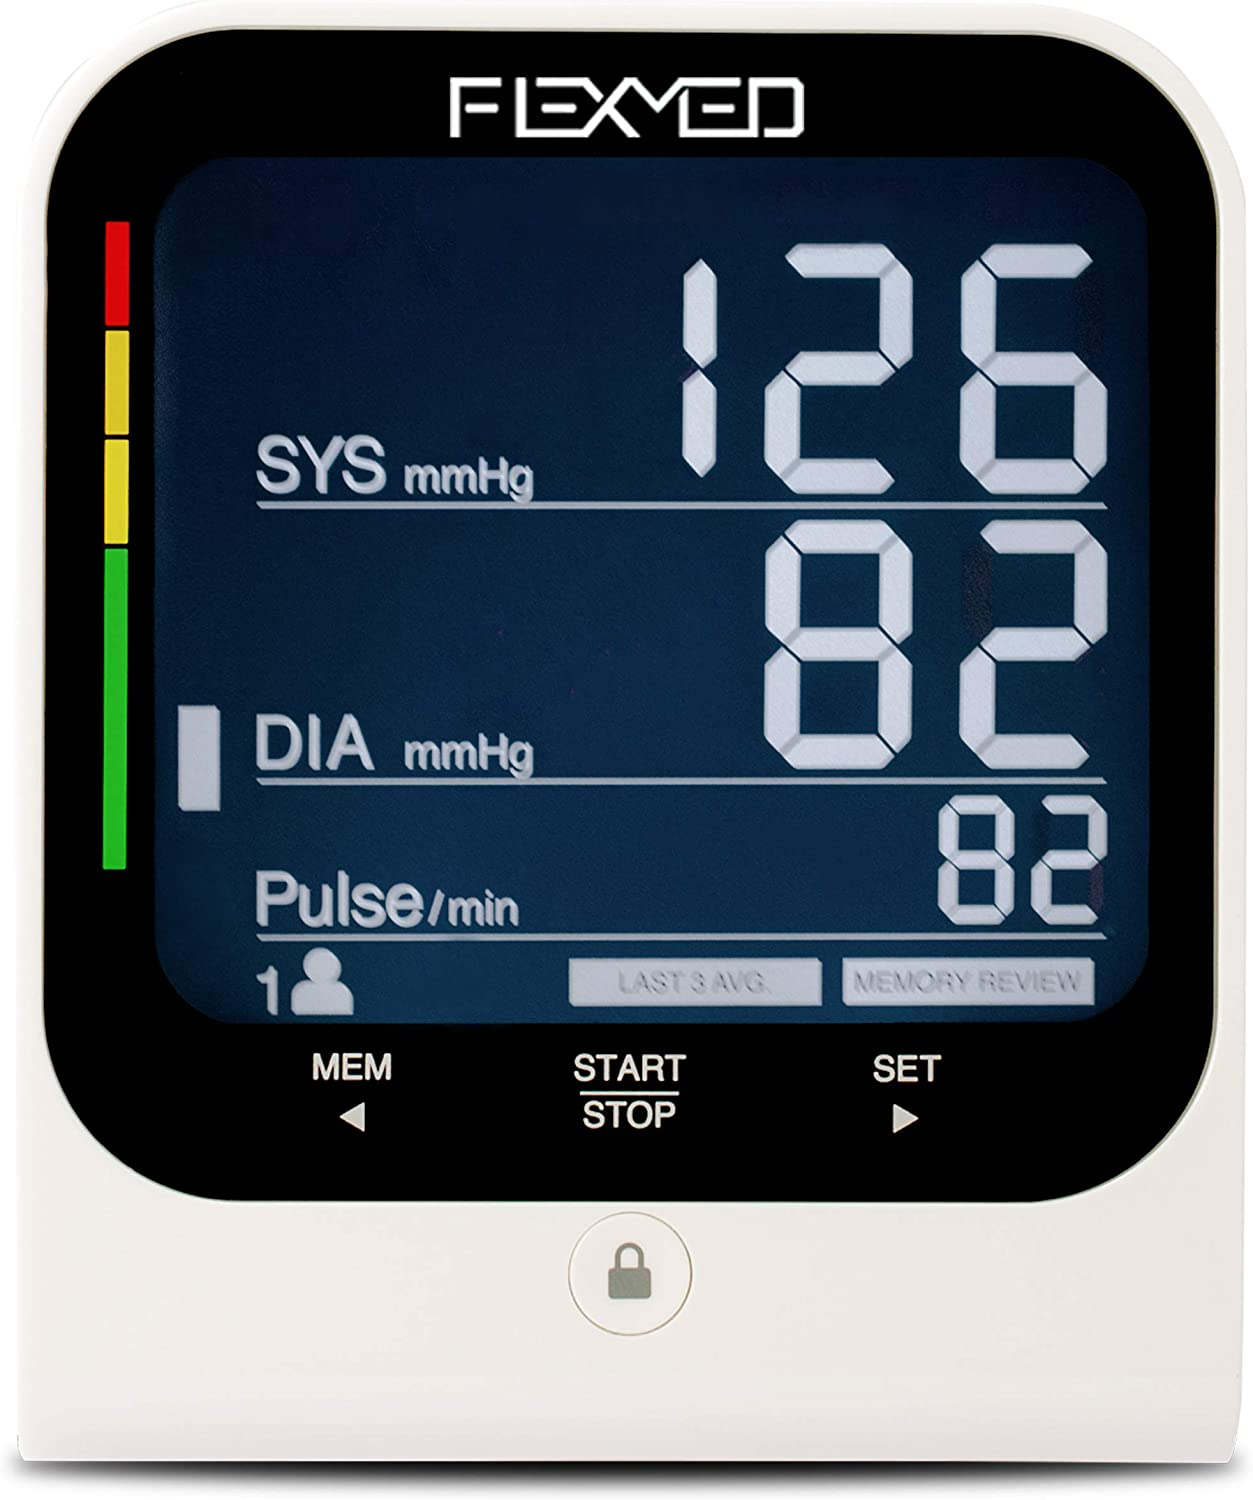 FLEXMED Automatic Digital Blood Pressure Monitor Upper Arm with Large Adjustable Wide Range Cuff High Accuracy Large LCD Back-lit Display 120 Memory FDA Approved and Batteries Included.